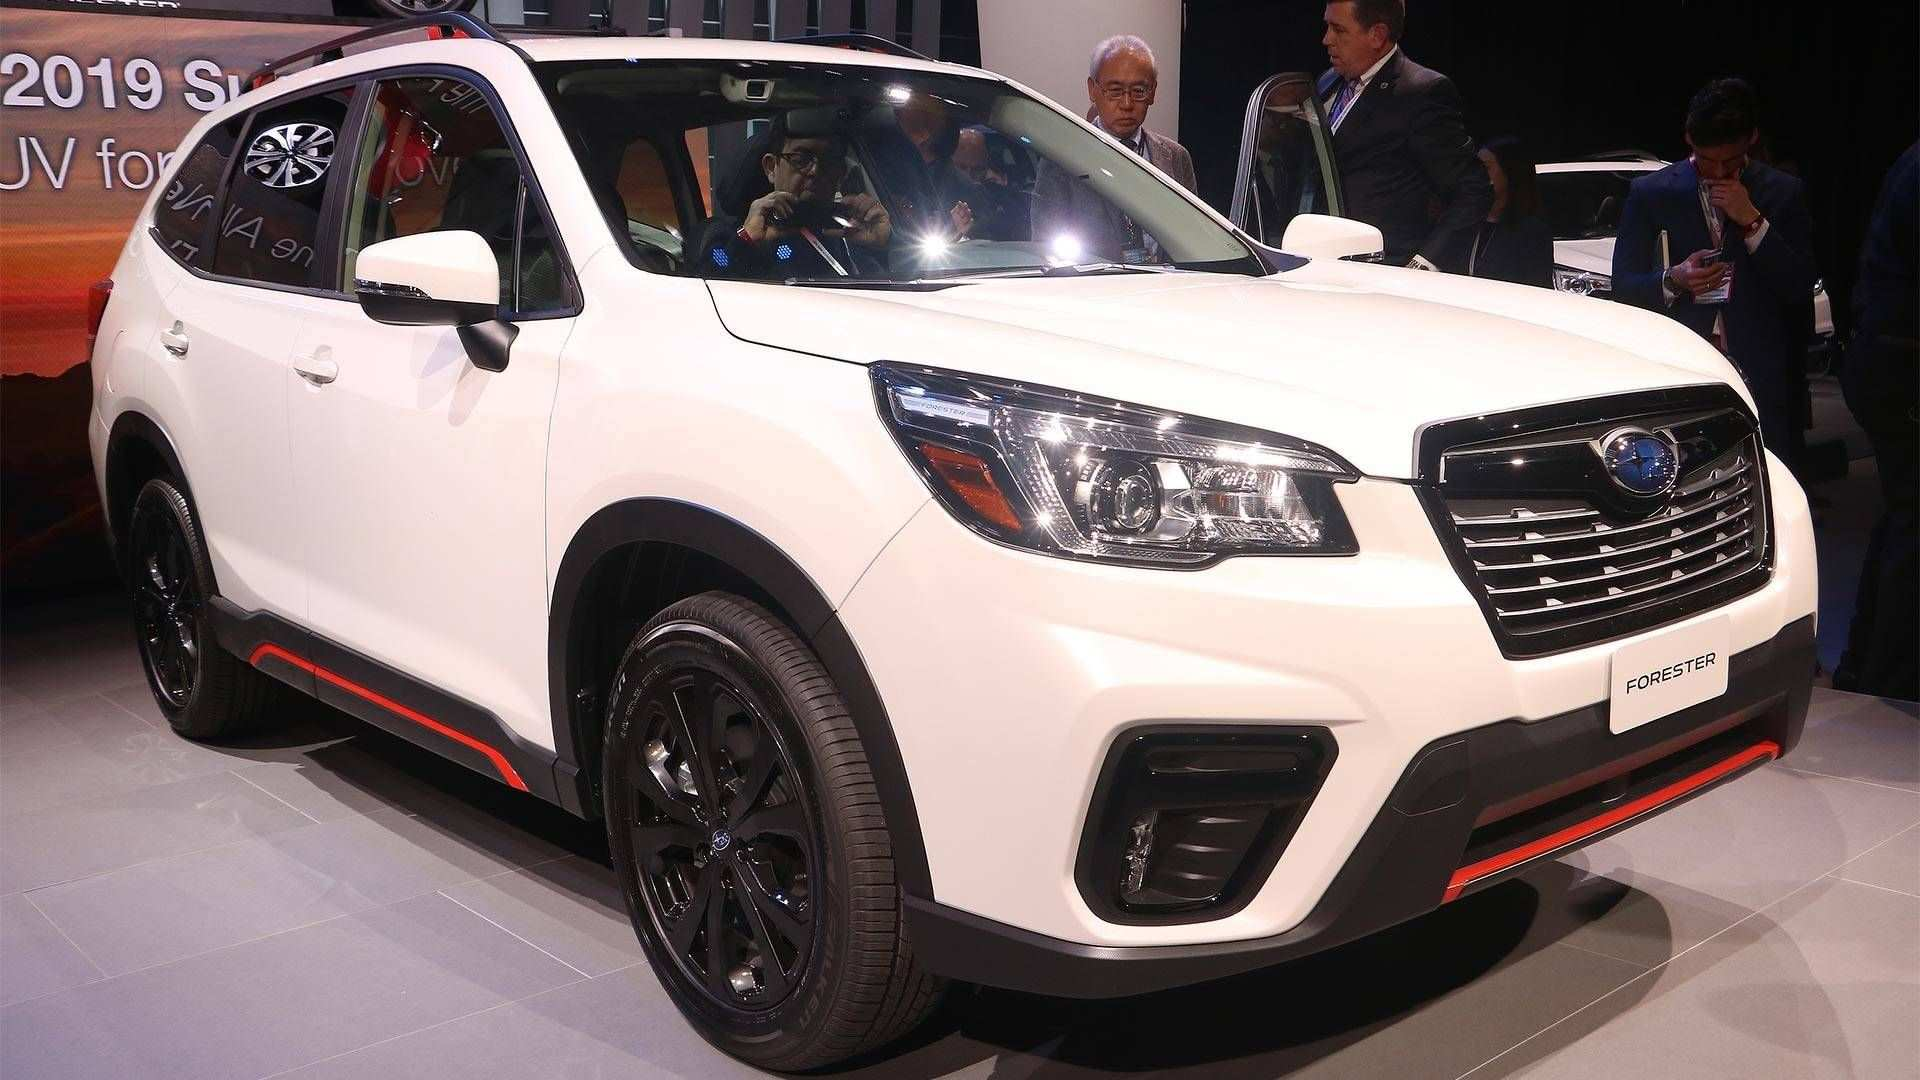 36 Concept of Subaru Forester 2019 Ground Clearance Rumors Release Date for Subaru Forester 2019 Ground Clearance Rumors